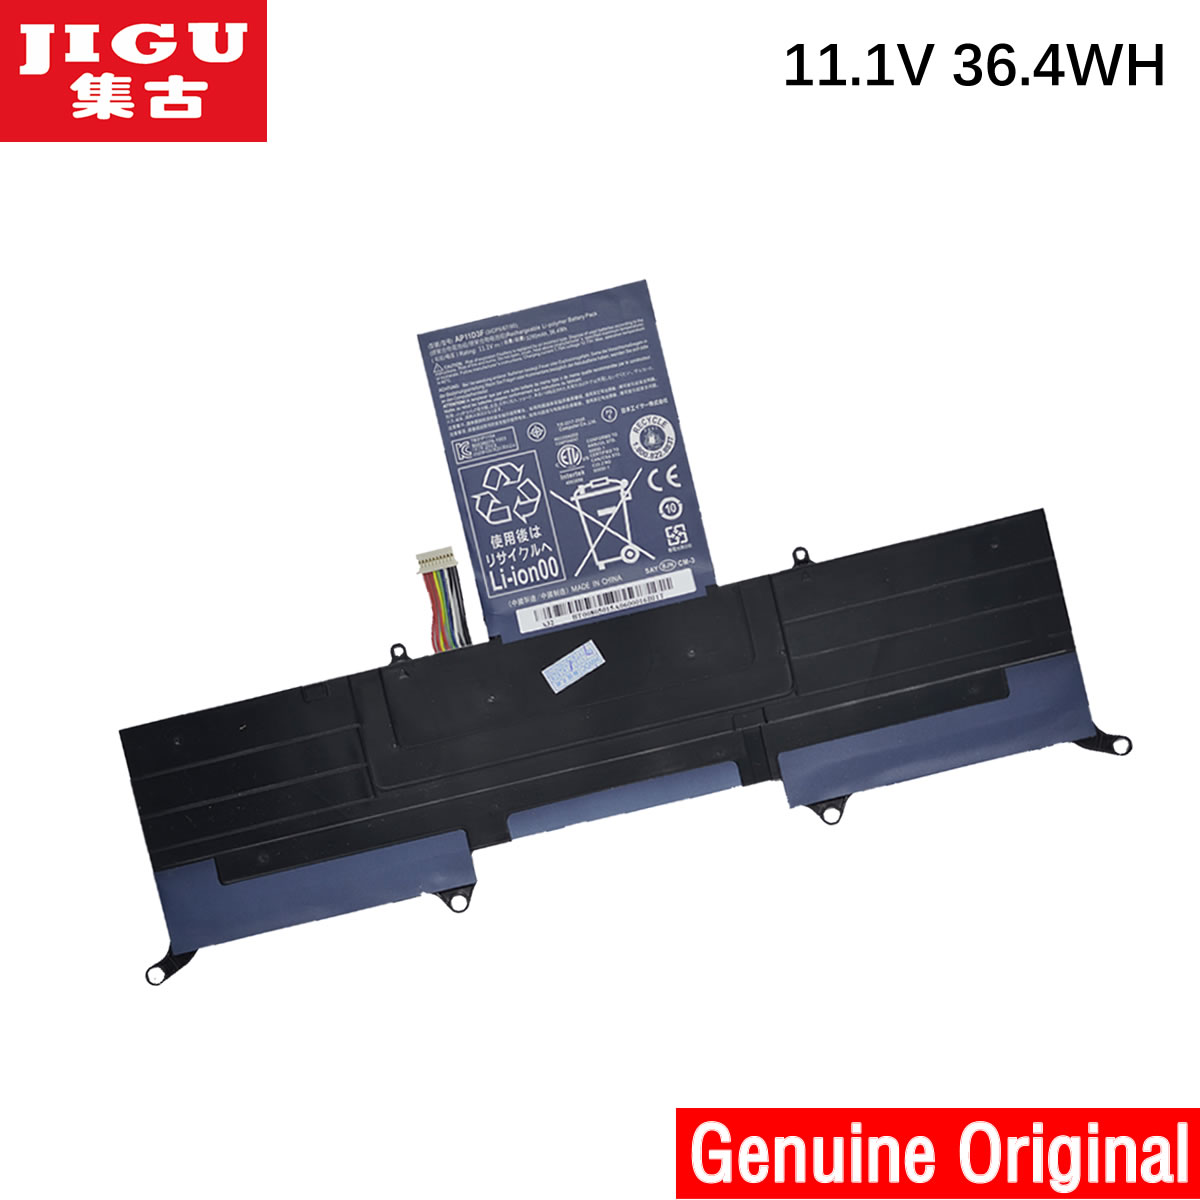 JIGU AP11D3F Original Battery For Acer Aspire S3 S3-951 S3-391 MS2346 AP11D3F AP11D4F 3ICP5/65/88 3ICP5/67/90 11.1V 3280mAh